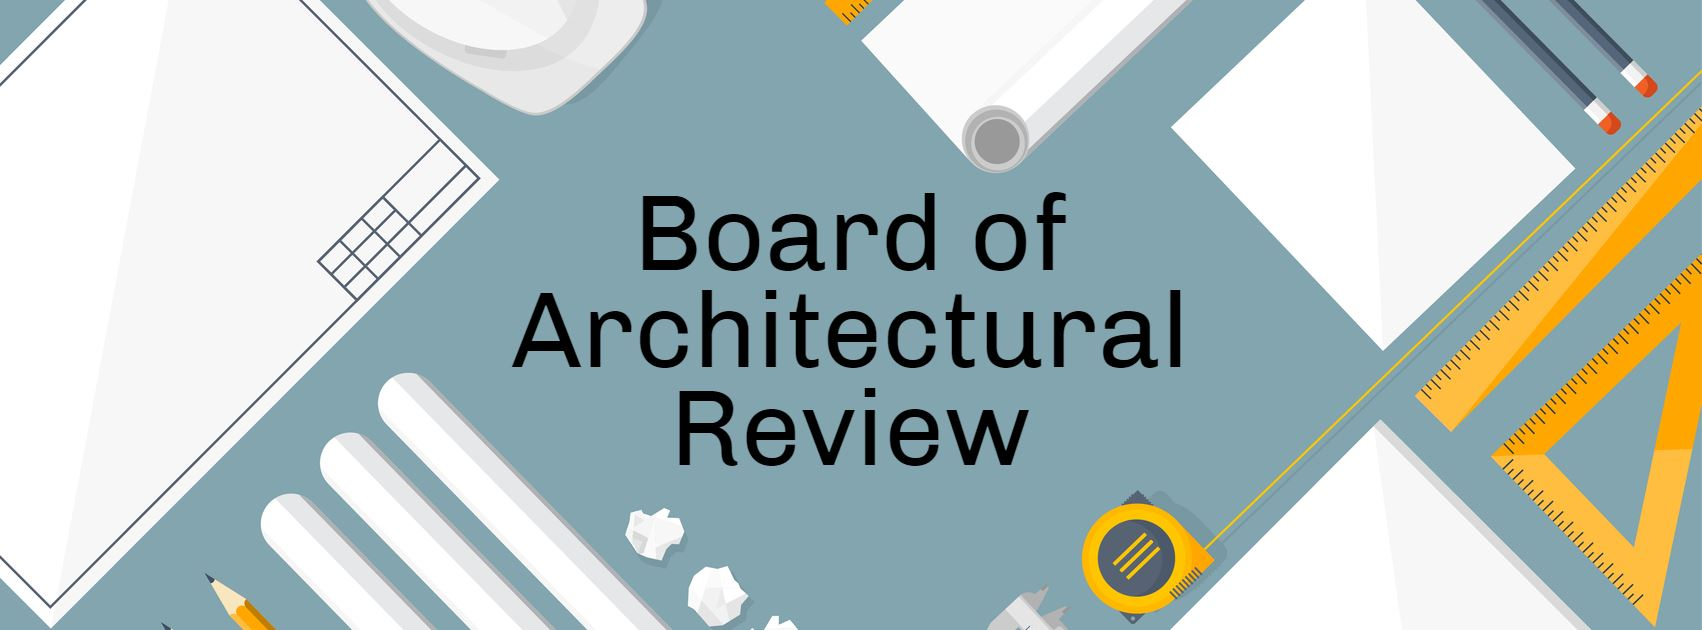 Board of Architectural Review